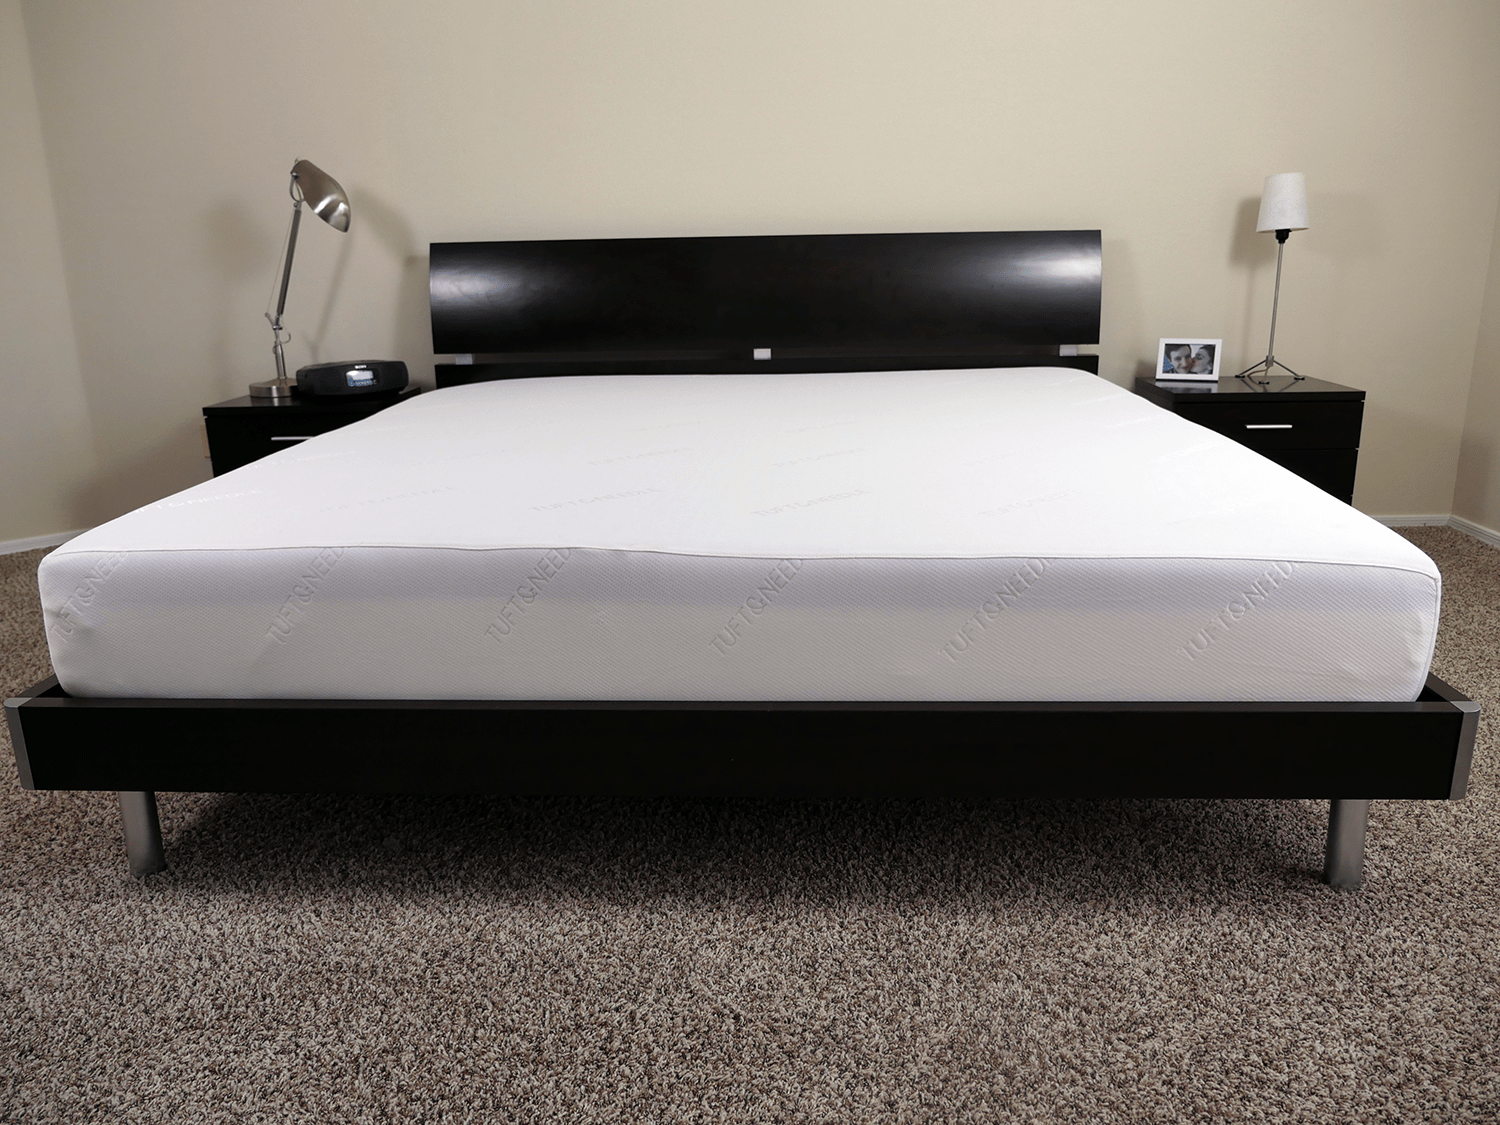 Tuft needle mattress review sleepopolis for Brooklyn bedding vs purple